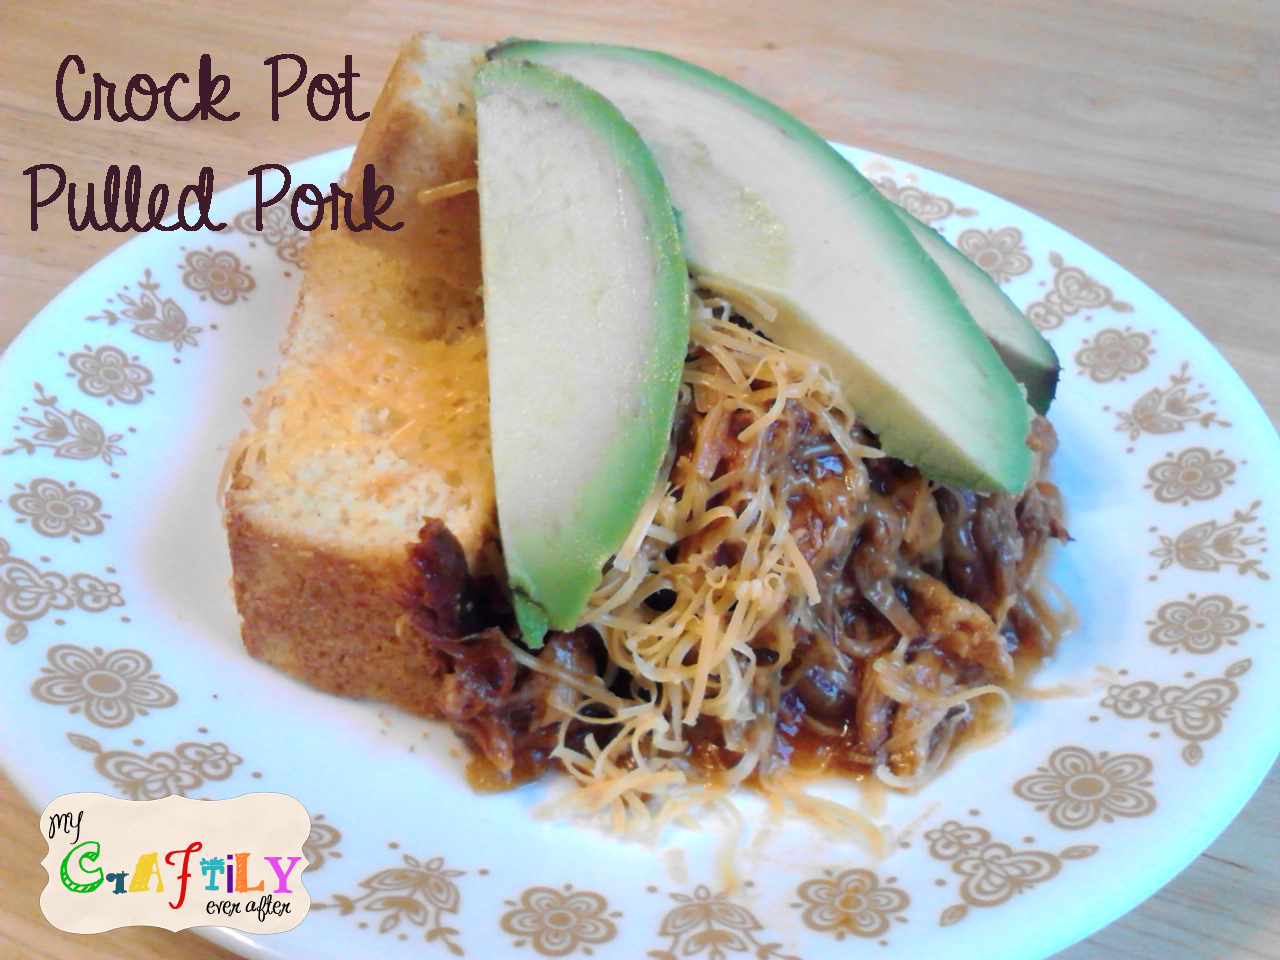 Crock Pot Pulled Pork - My Craftily Ever After